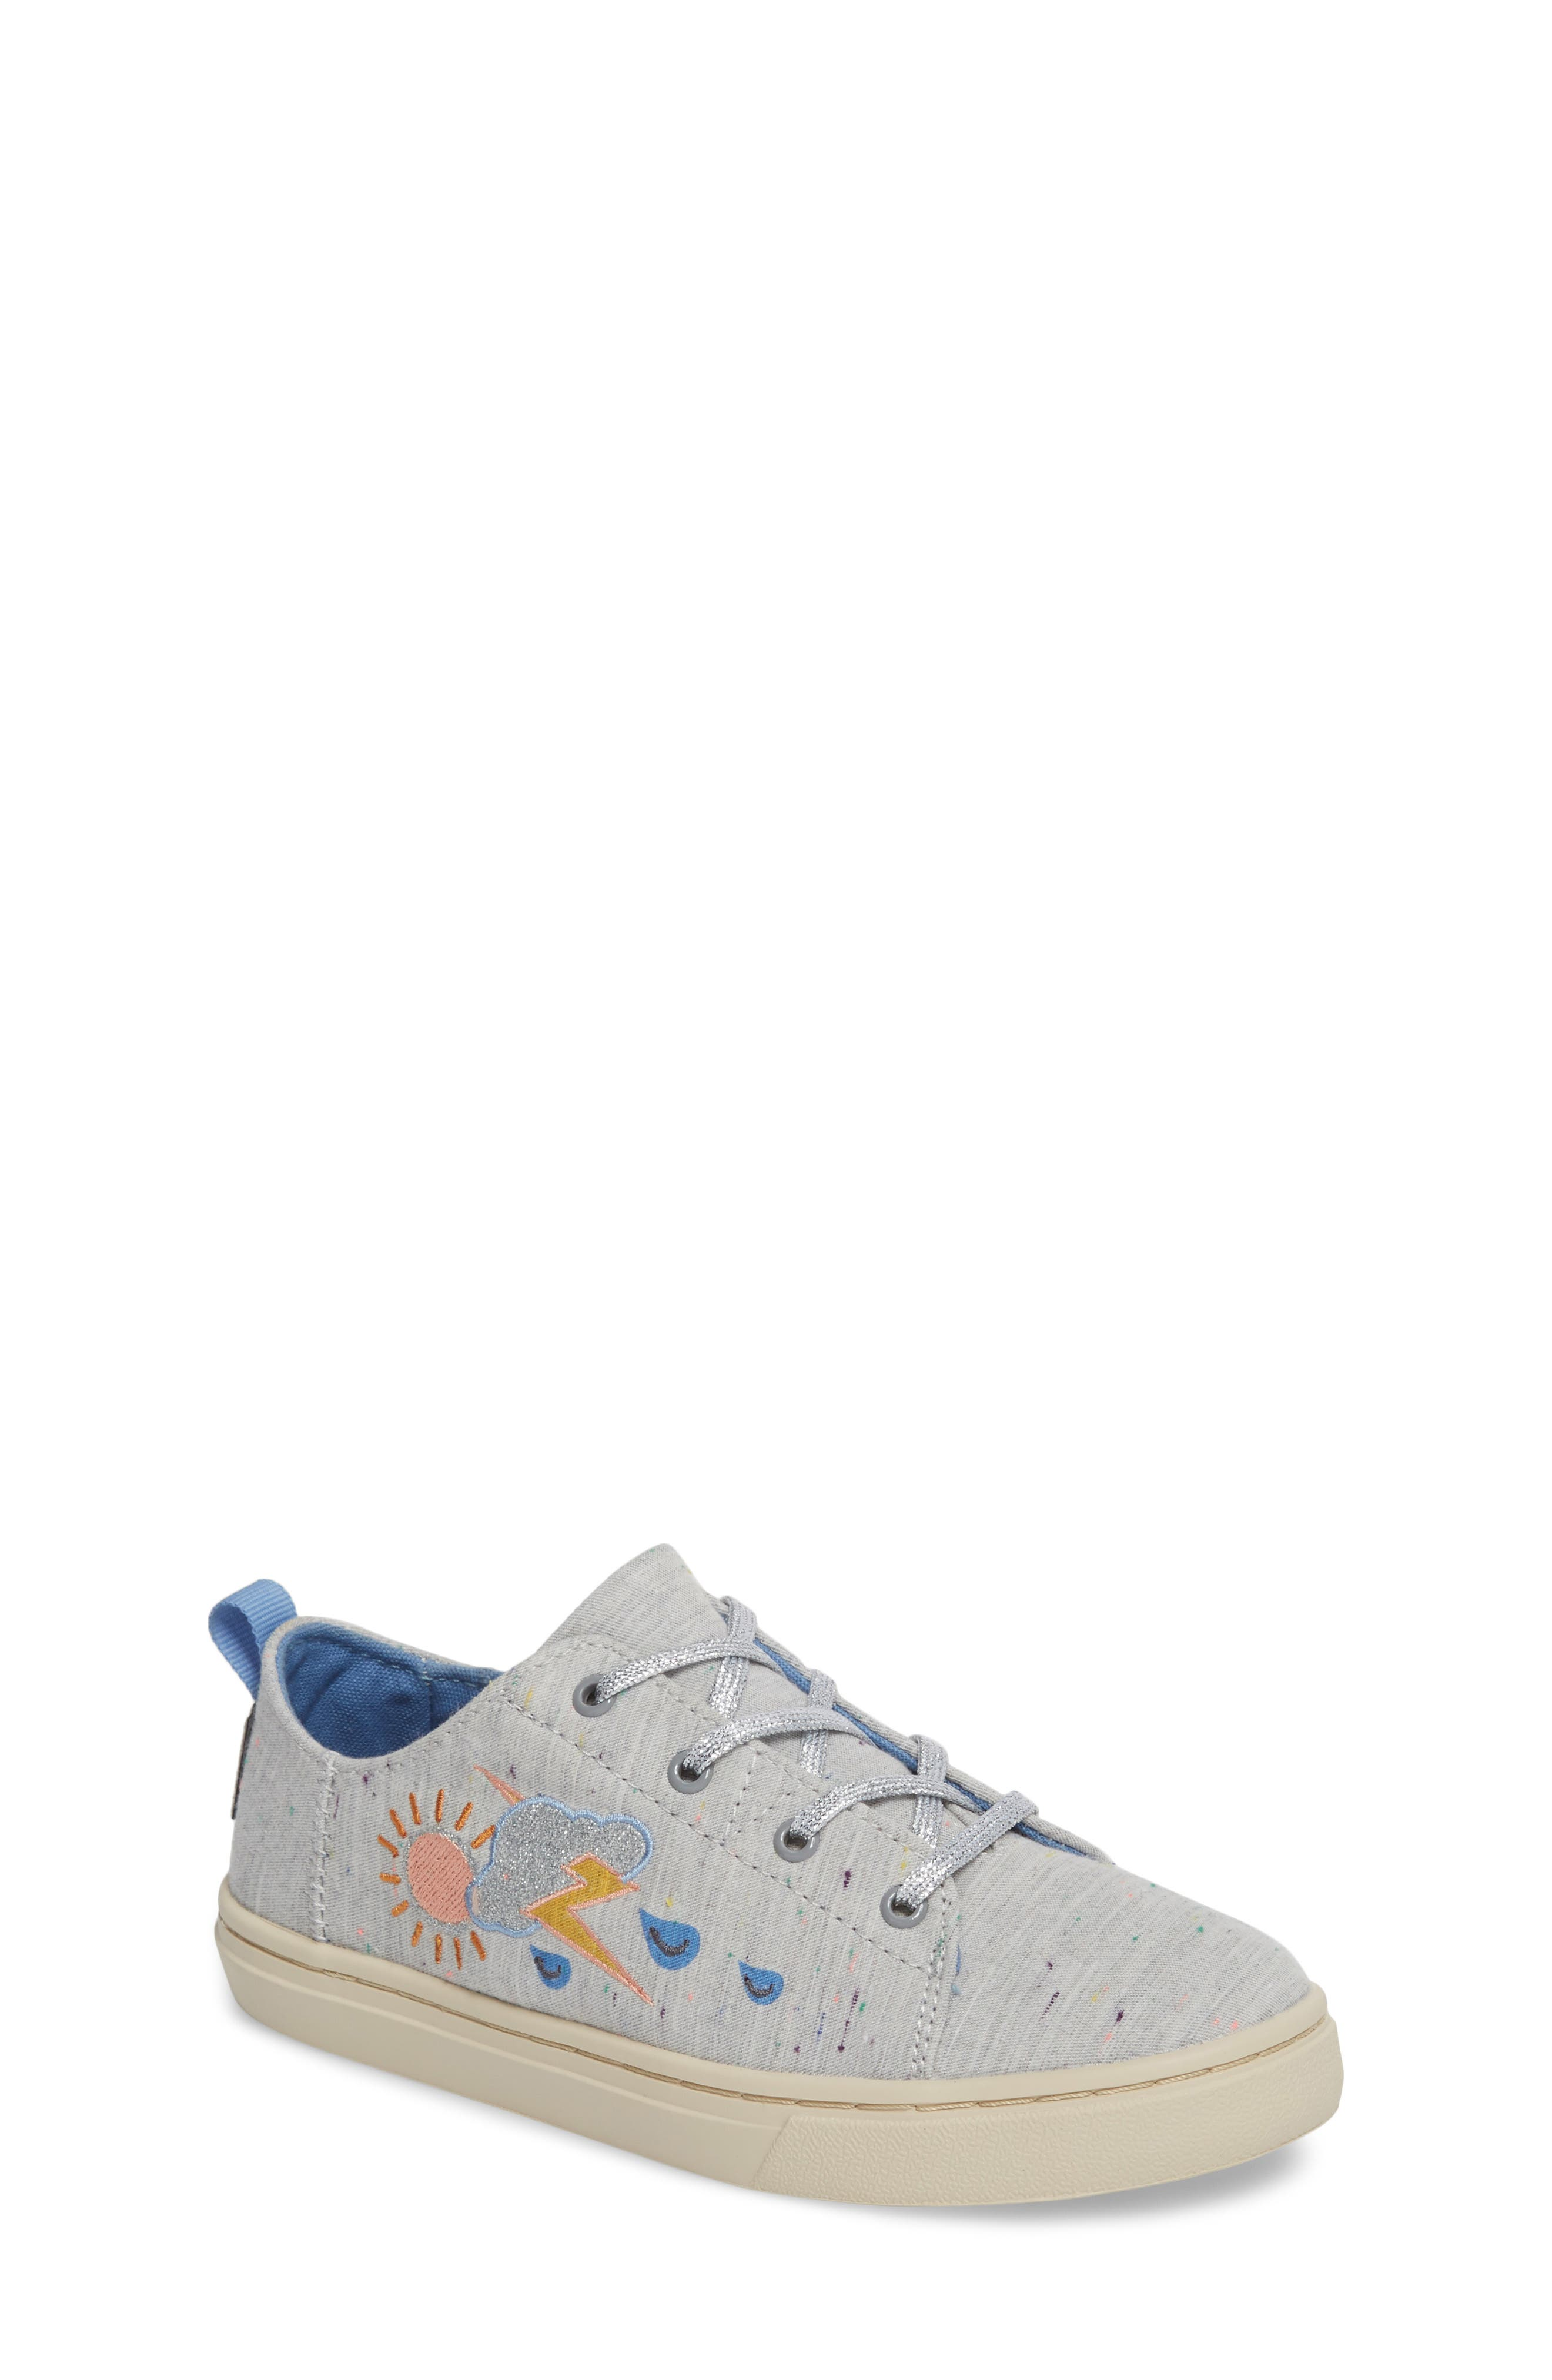 Main Image - TOMS Lenny Embroidered Sneaker (Toddler, Little Kid & Big Kid)